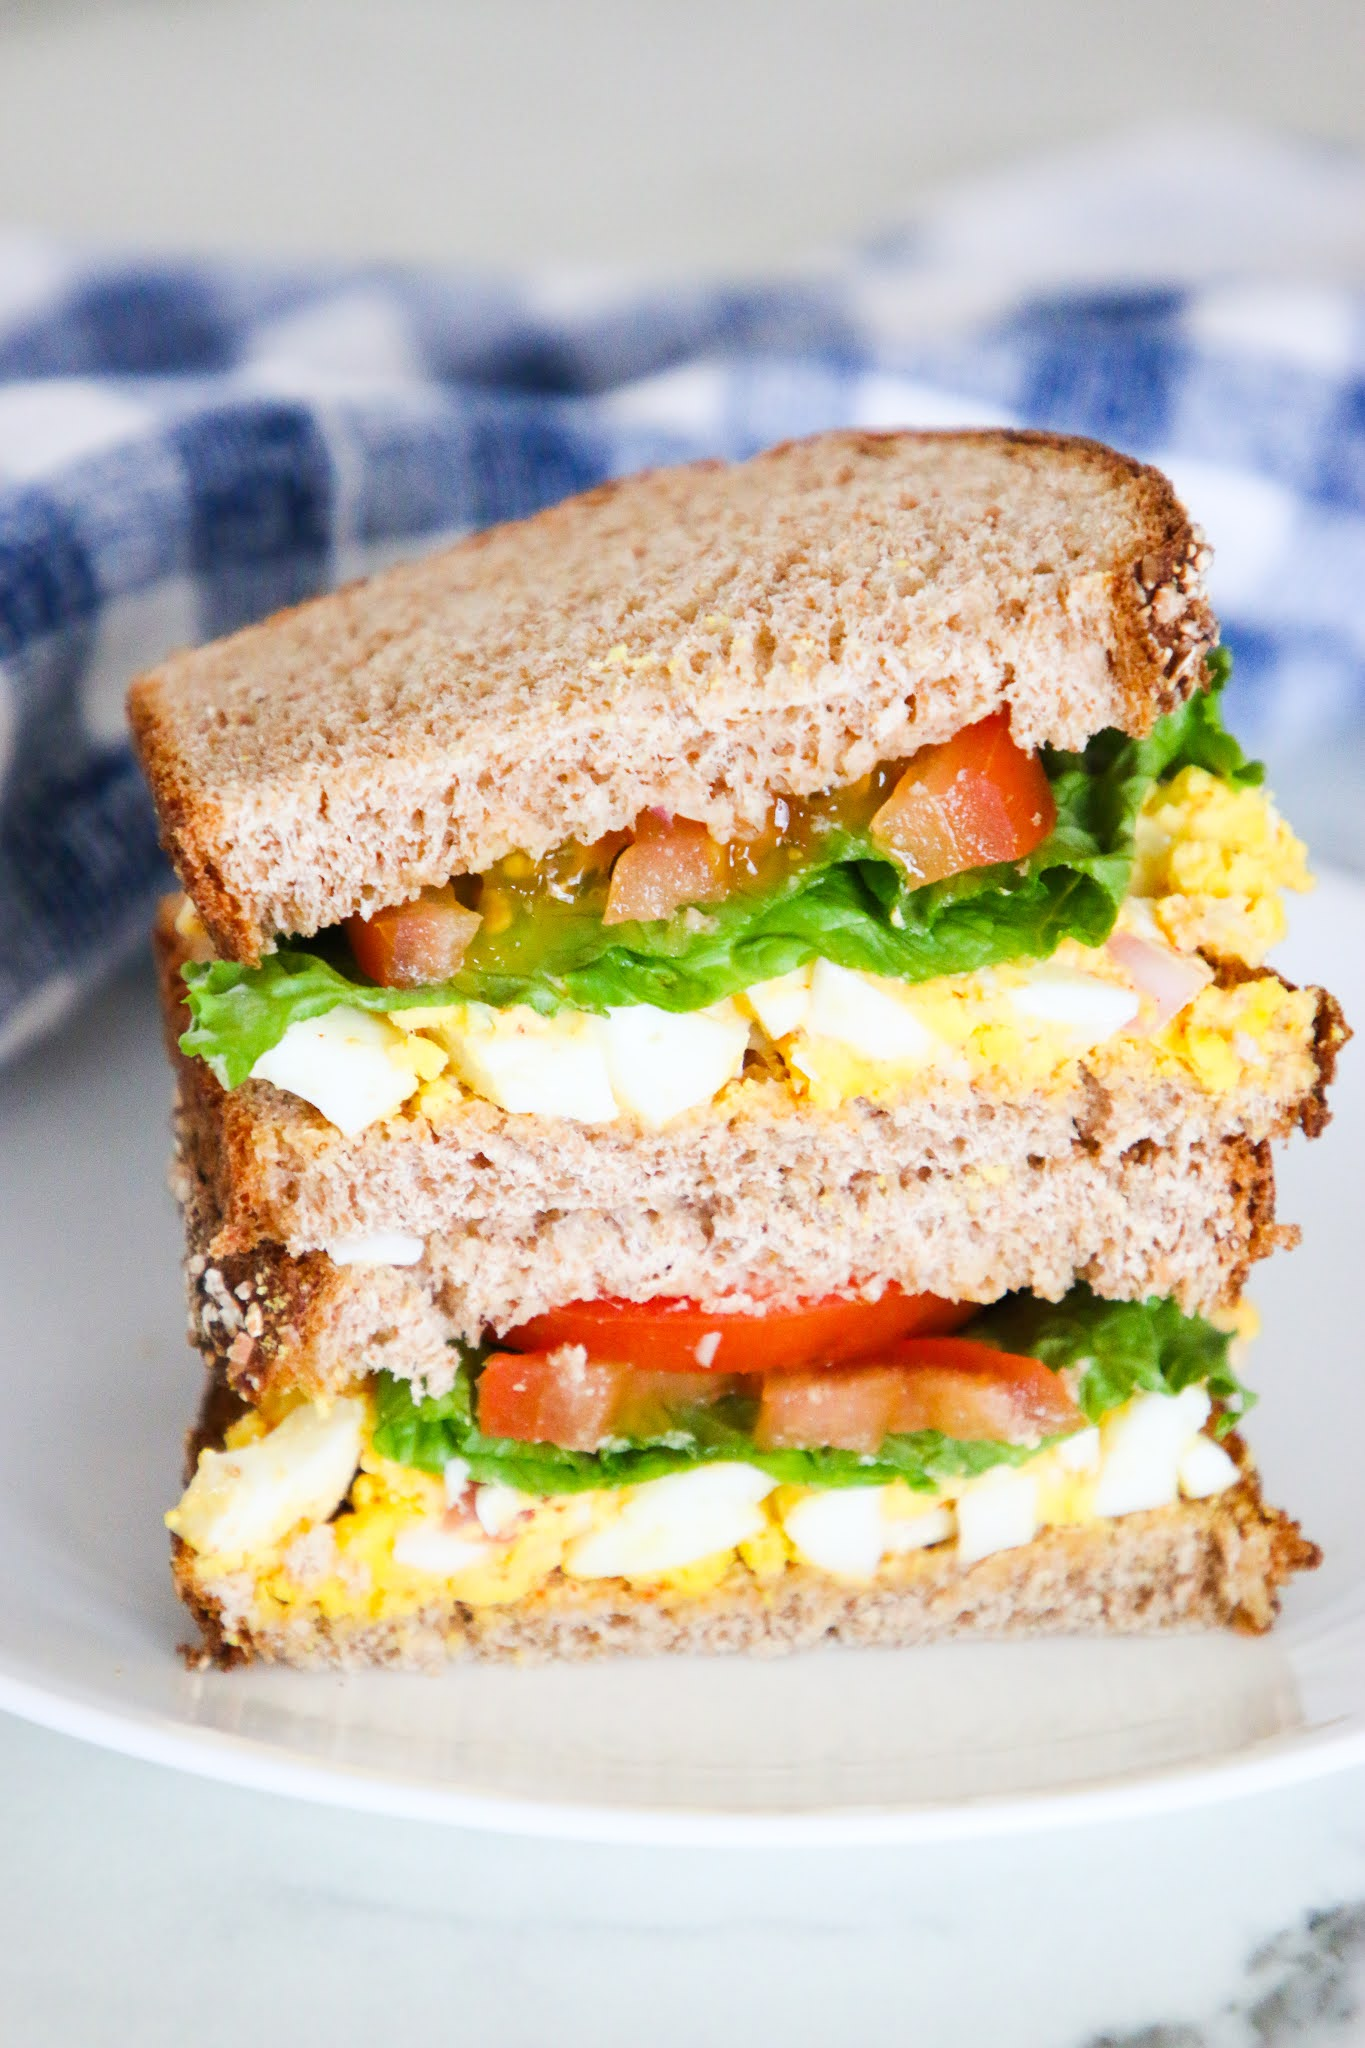 Two halves of an egg salad sandwich stacked together on a white plate with a blue dishtowel in the background on a marble table